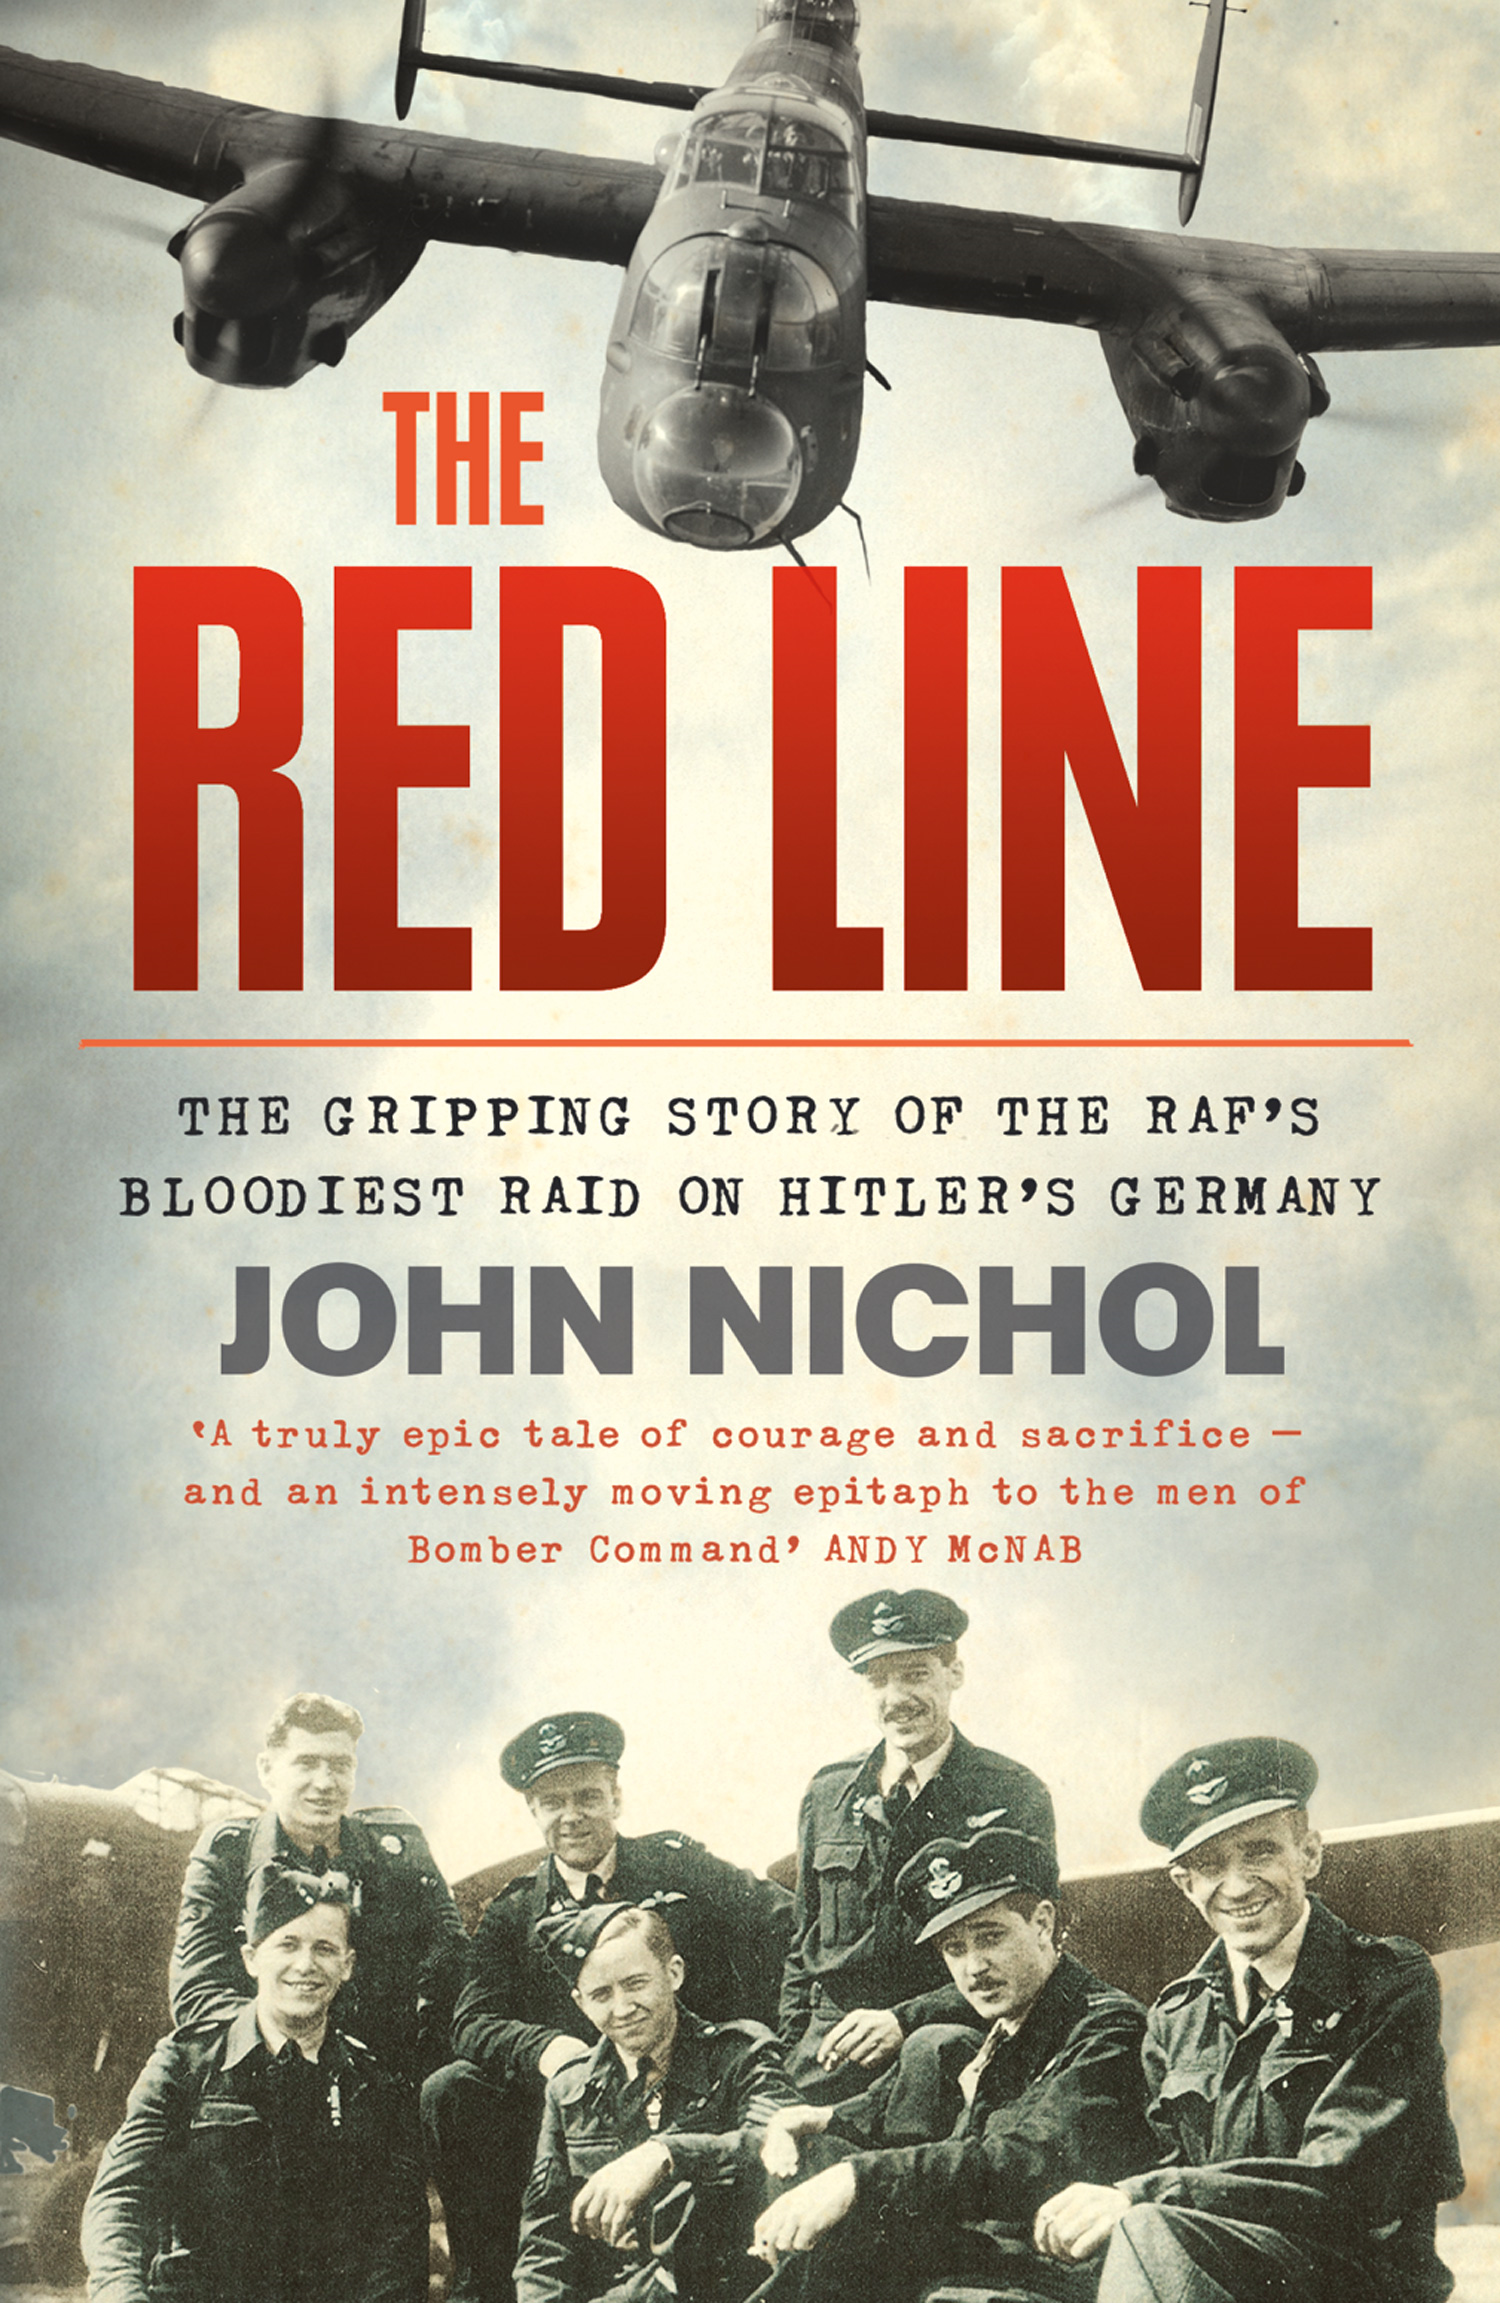 The Red Line: The Gripping Story of the RAF?s Bloodiest Raid on Hitler?s Germany